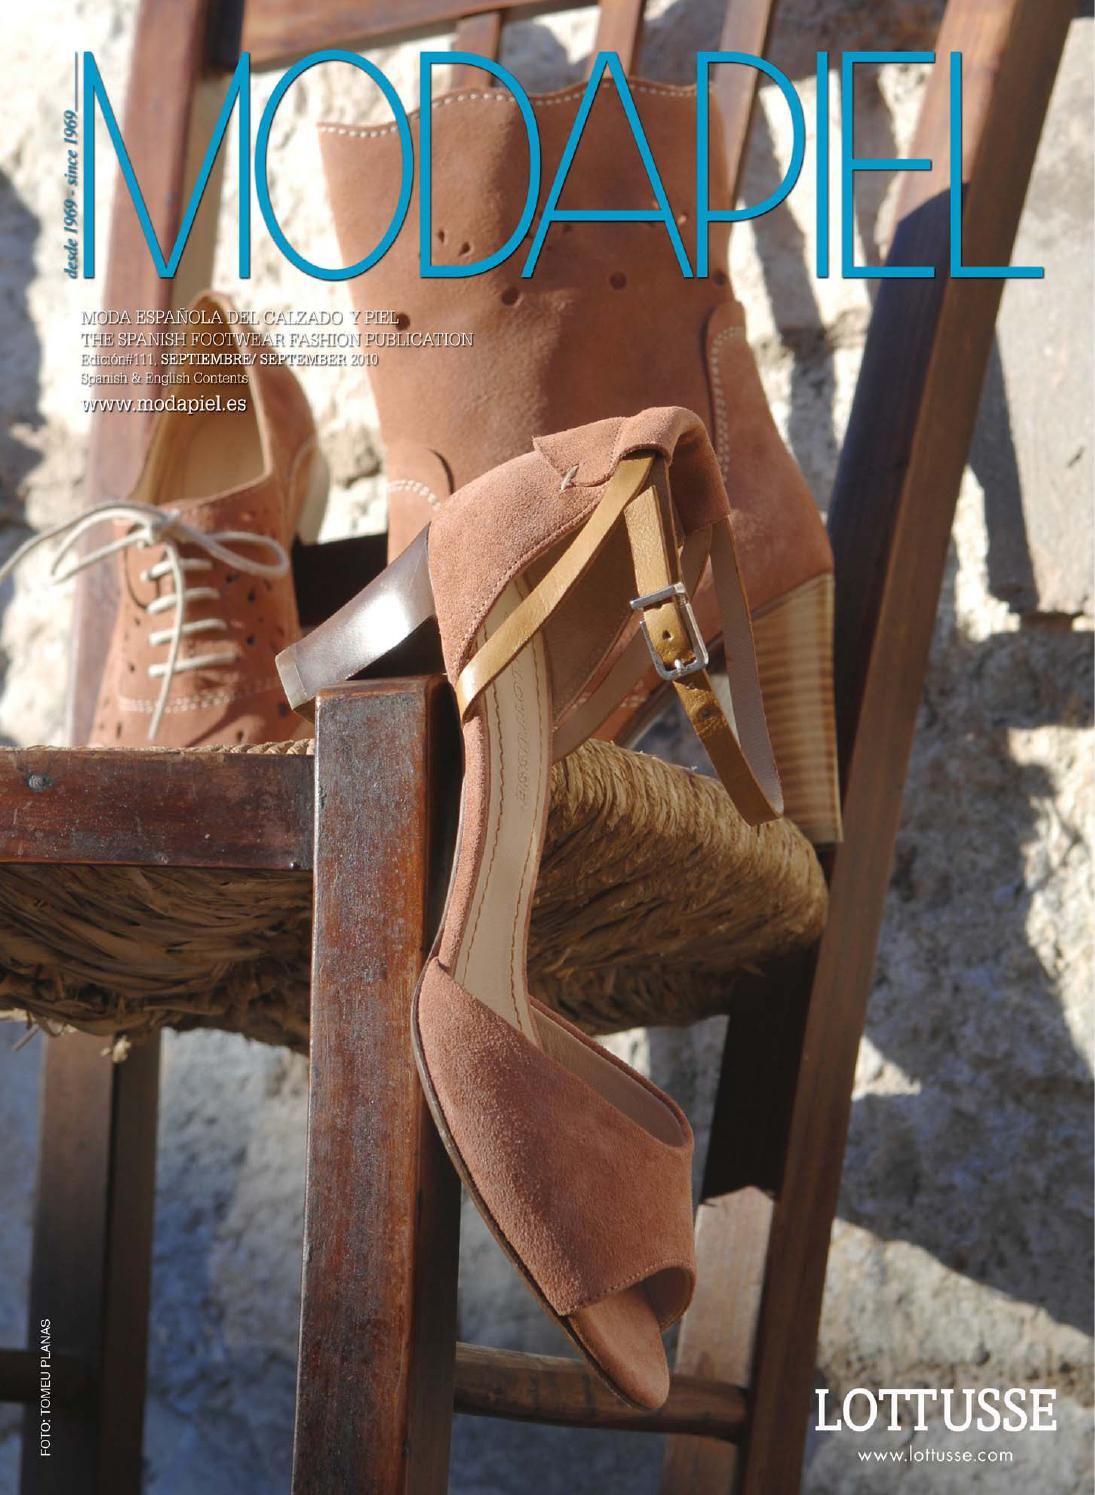 Modapiel 111 Shoes and accessories magazine by Prensa Técnica S.L. - issuu b4ebb0481fbf